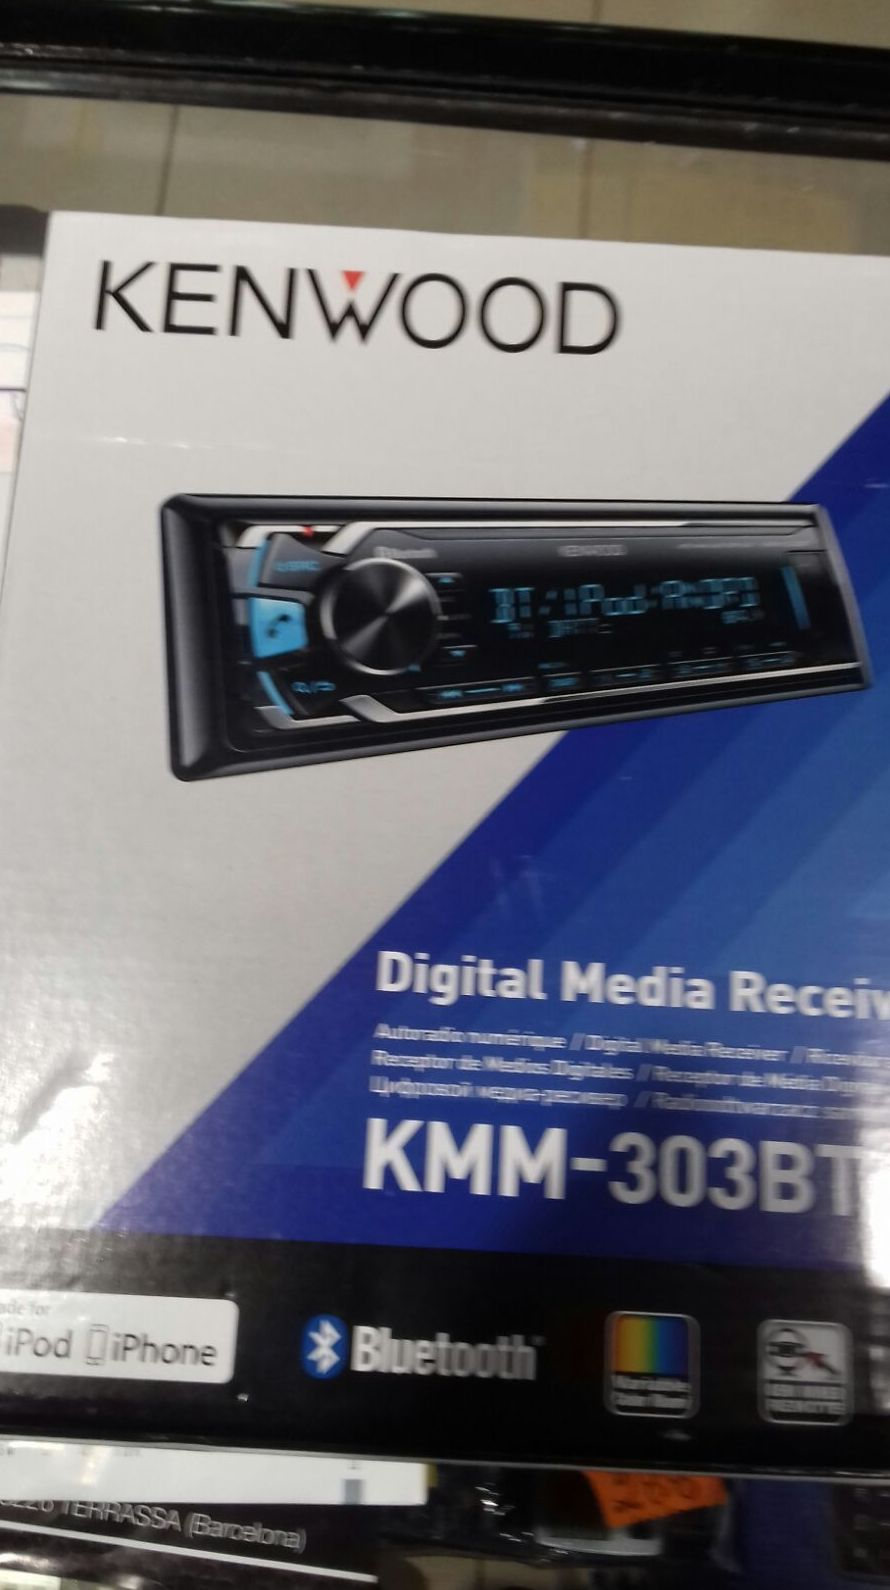 Auto radio con bluetooth usb. Imitación variable con montaje 99€